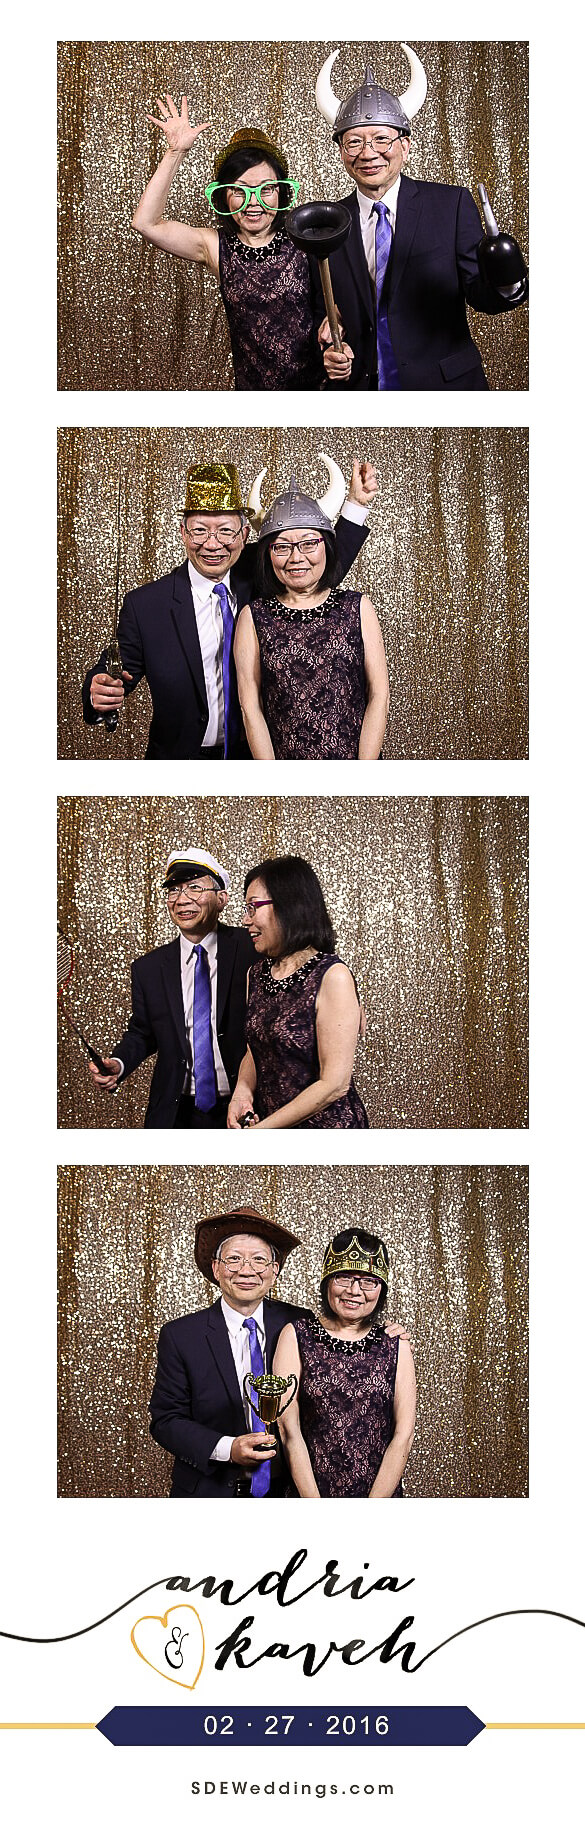 Toronto 99 Sudbury Wedding Photo Booth Rental 5